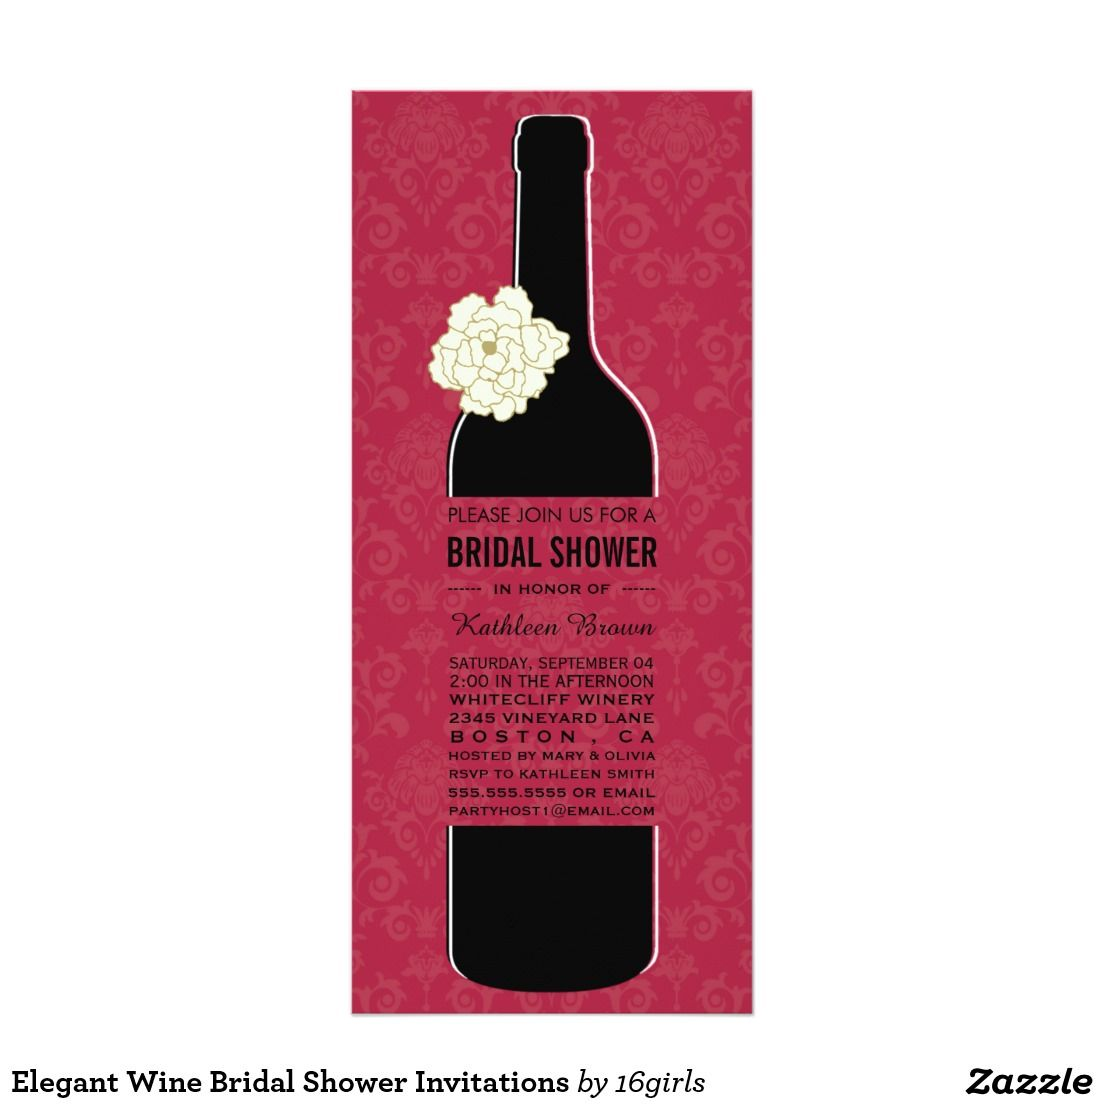 Elegant Wine Bridal Shower Invitations | Wine bridal showers, Shower ...